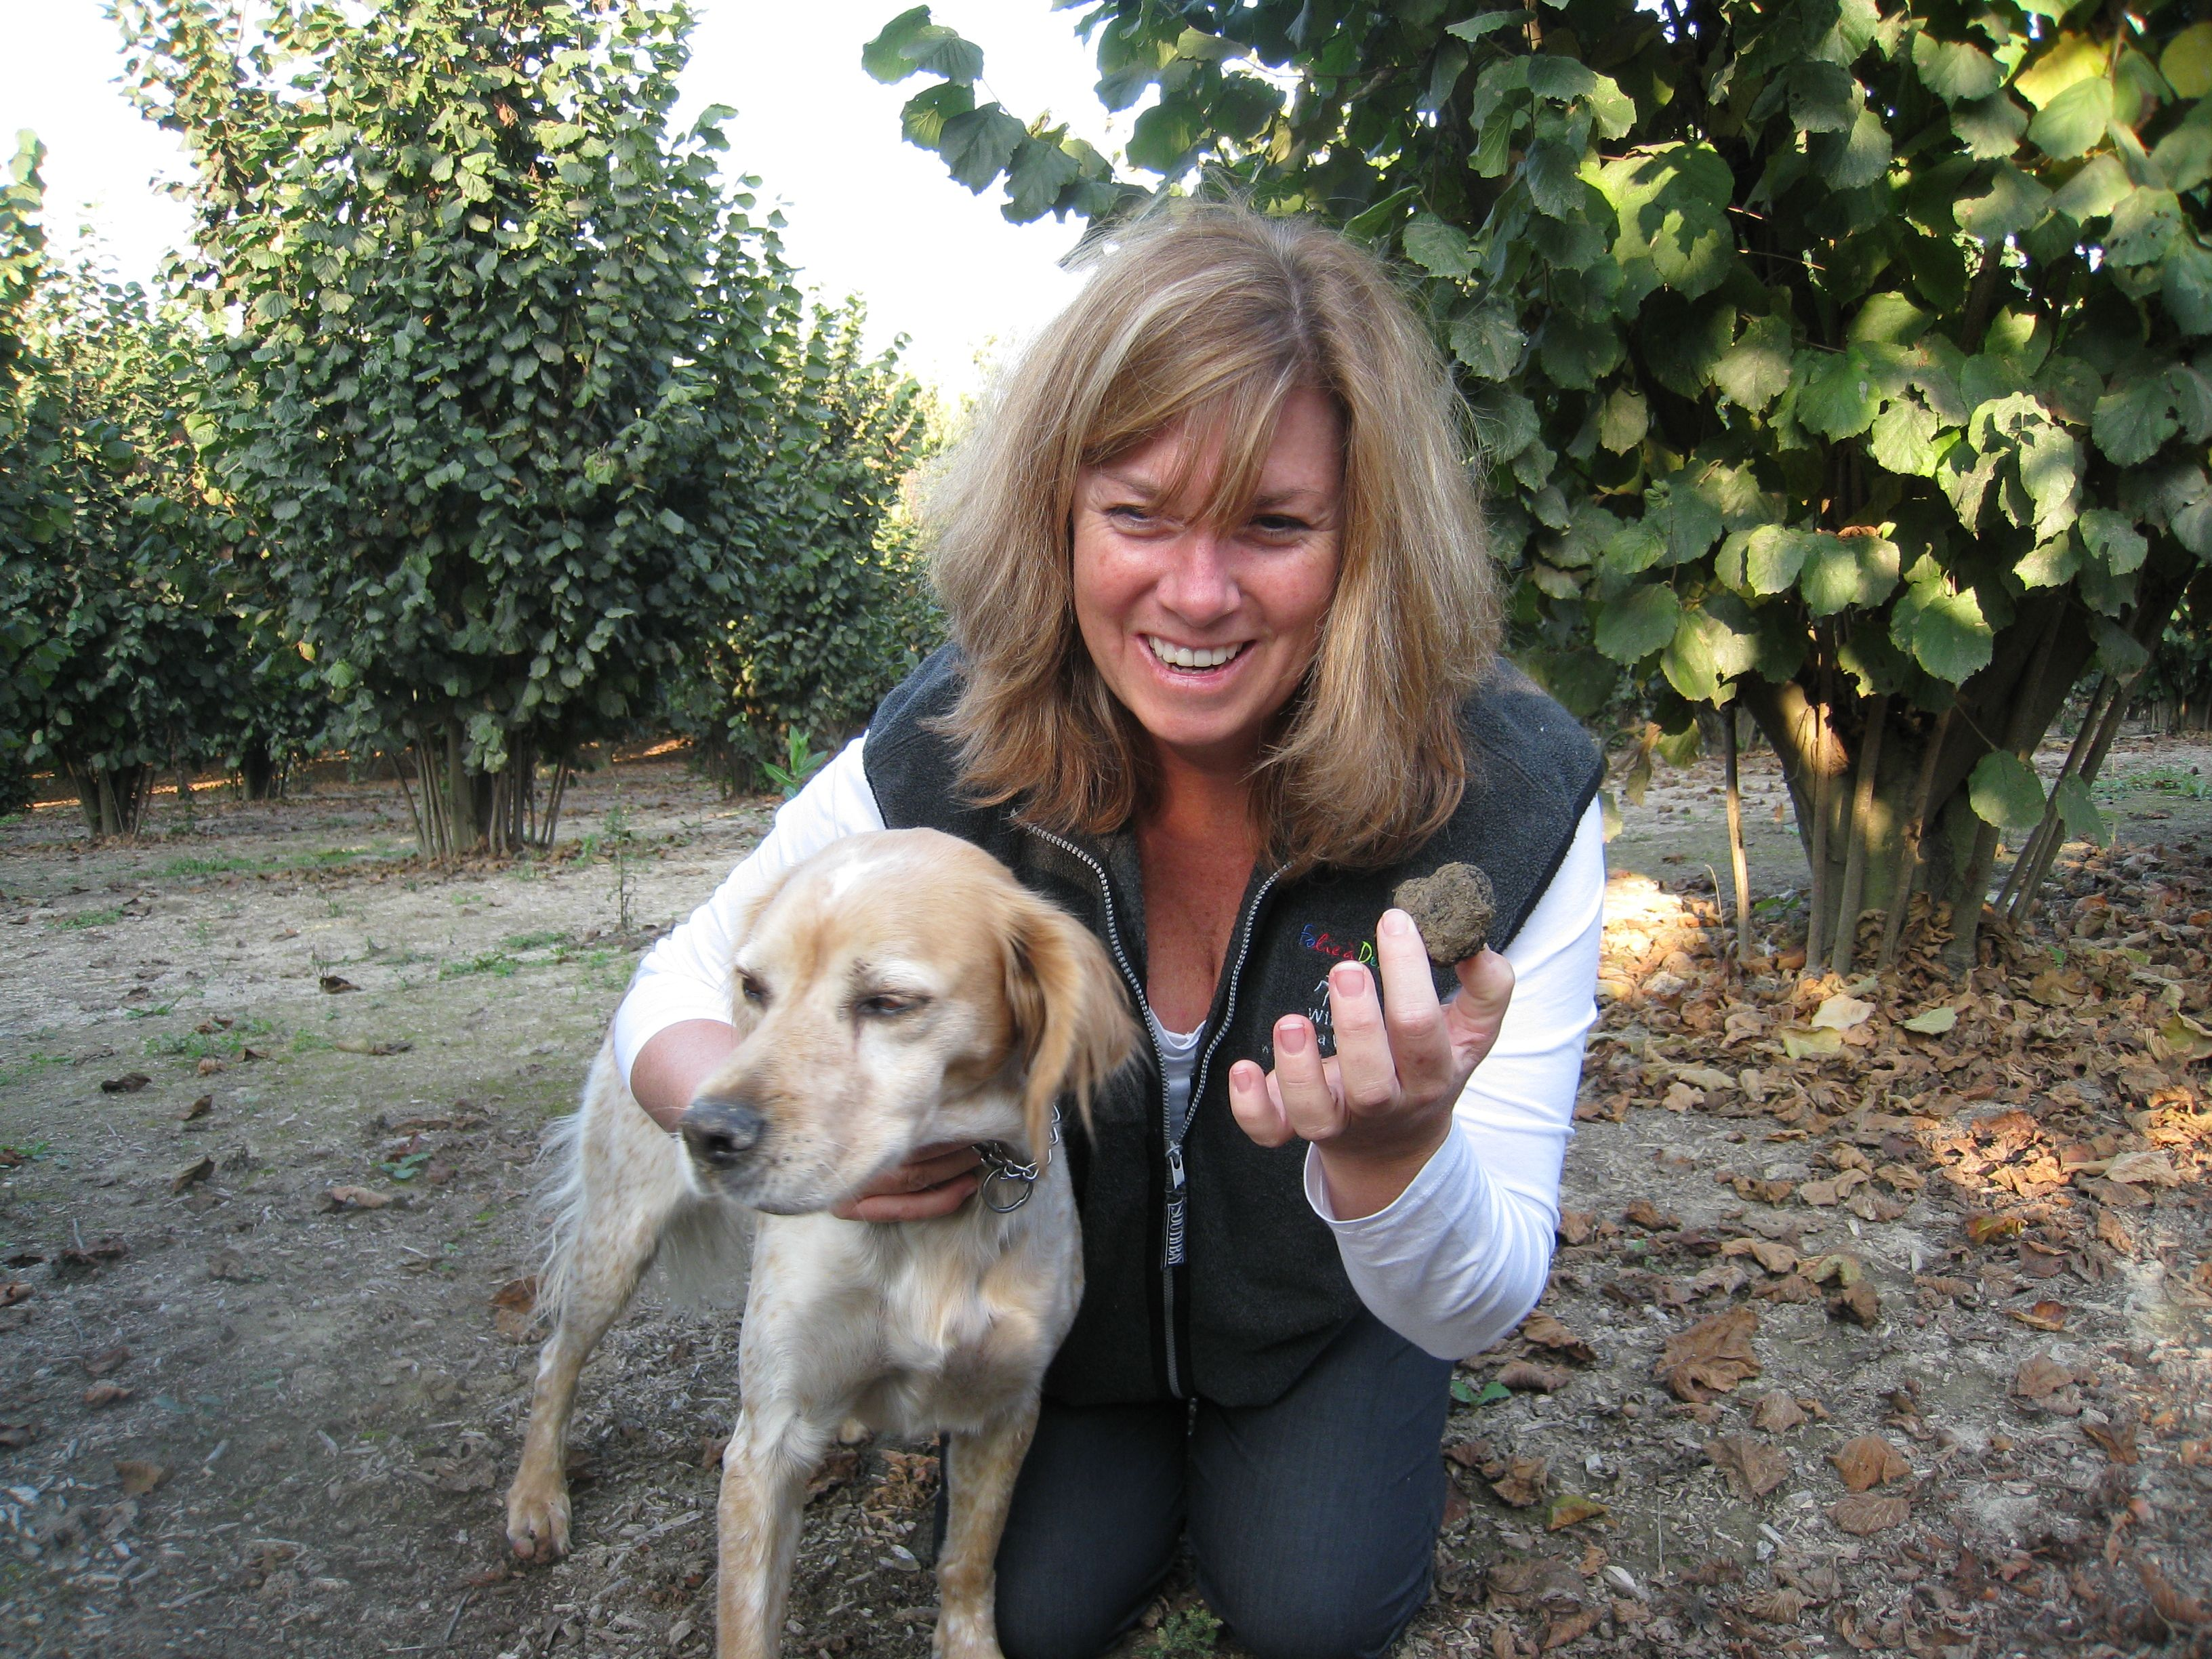 Truffle Hunting In Search Of The Elusive Tartufo Bianco